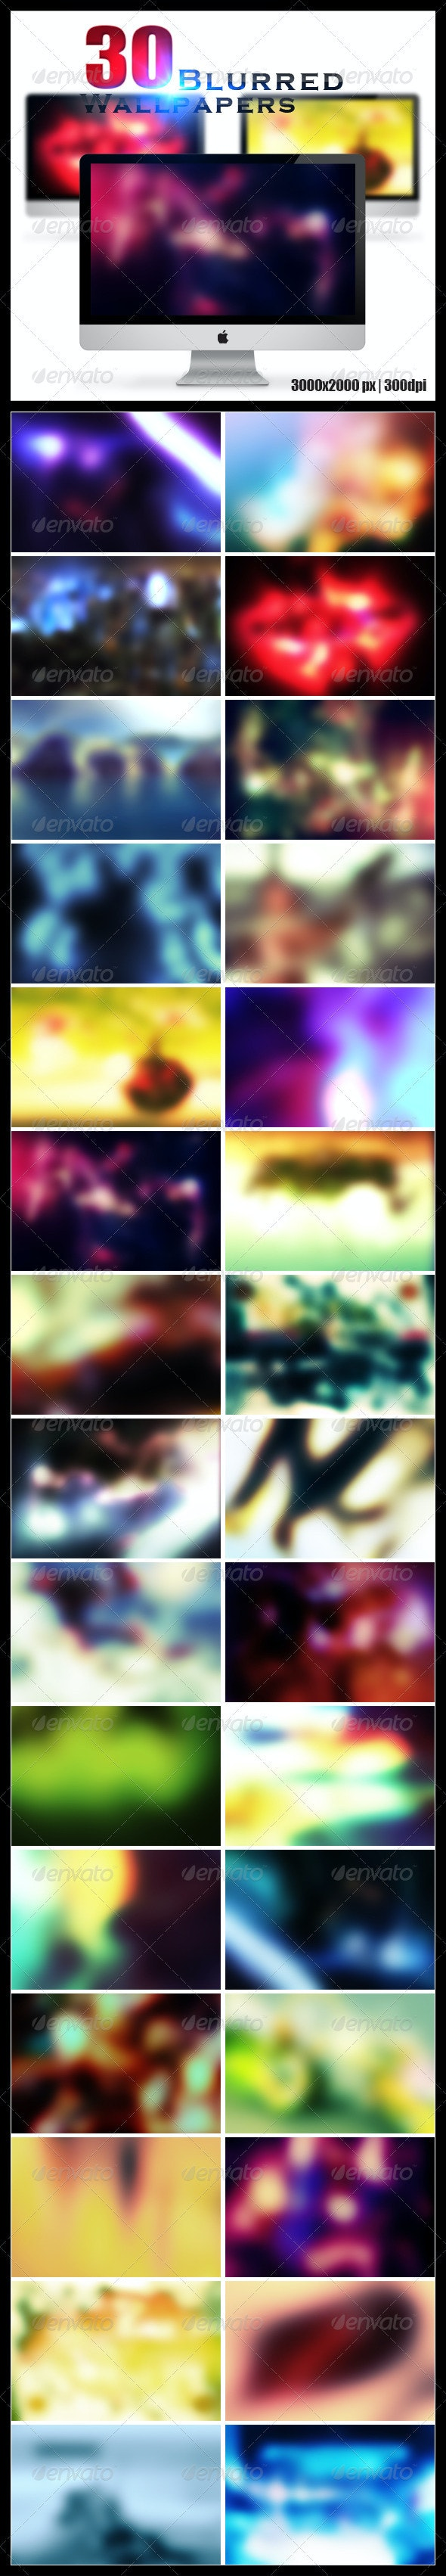 30 Blurred Wallpapers   Backgrounds - Backgrounds Graphics